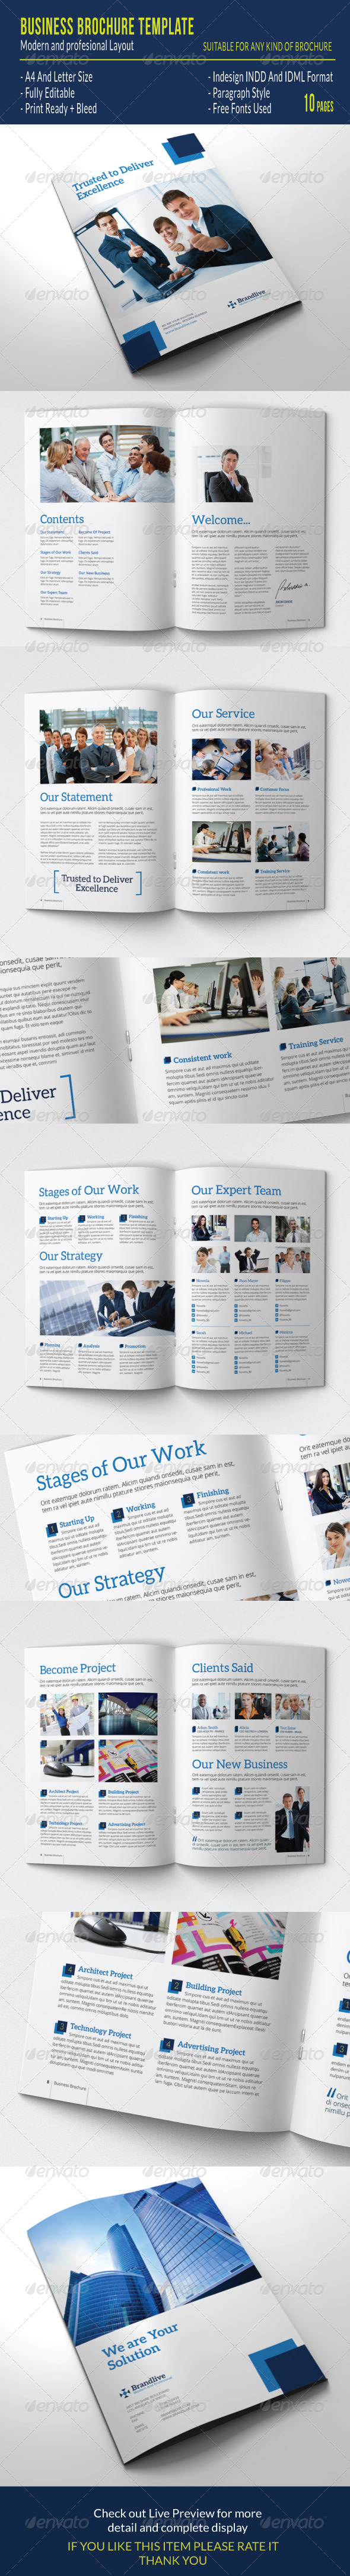 GraphicRiver Business Brochure Template 7587116